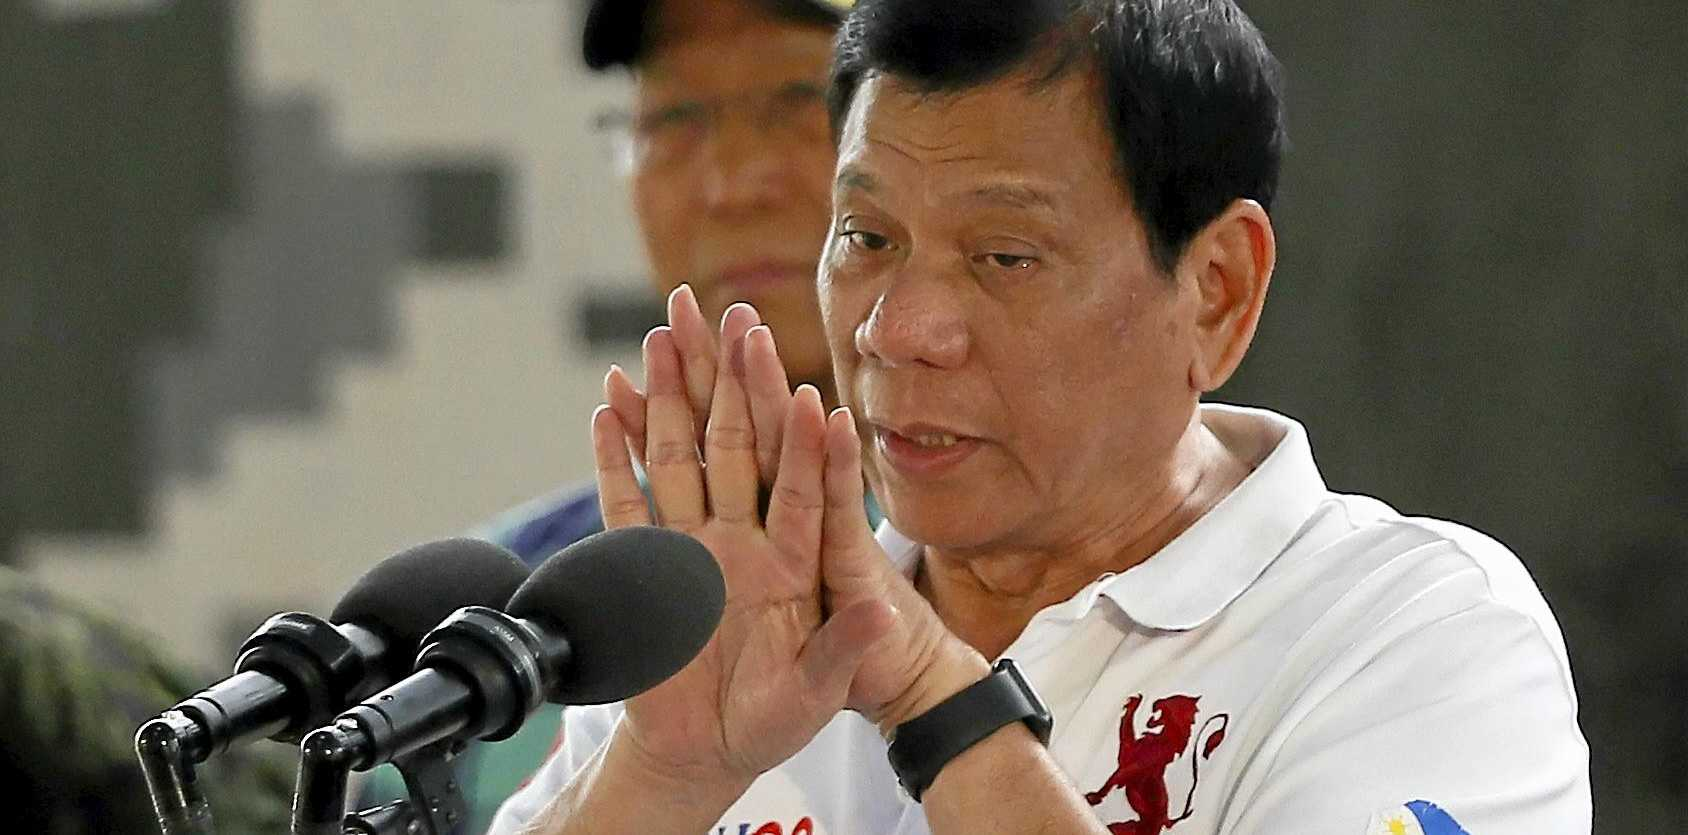 Philippine President Rodrigo Duterte gestures while addressing the Philippine Army Scout Rangers during his visit to their headquarters at Camp Tecson in San Miguel township, north of Manila, Philippines Thursday, Sept. 15, 2016. A former Filipino militiaman testified before the country's Senate that President Duterte, when he was still a mayor, ordered him and other members of a squad to kill criminals and opponents in assaults that left about 1,000 dead. (AP Photo/Bullit Marquez)